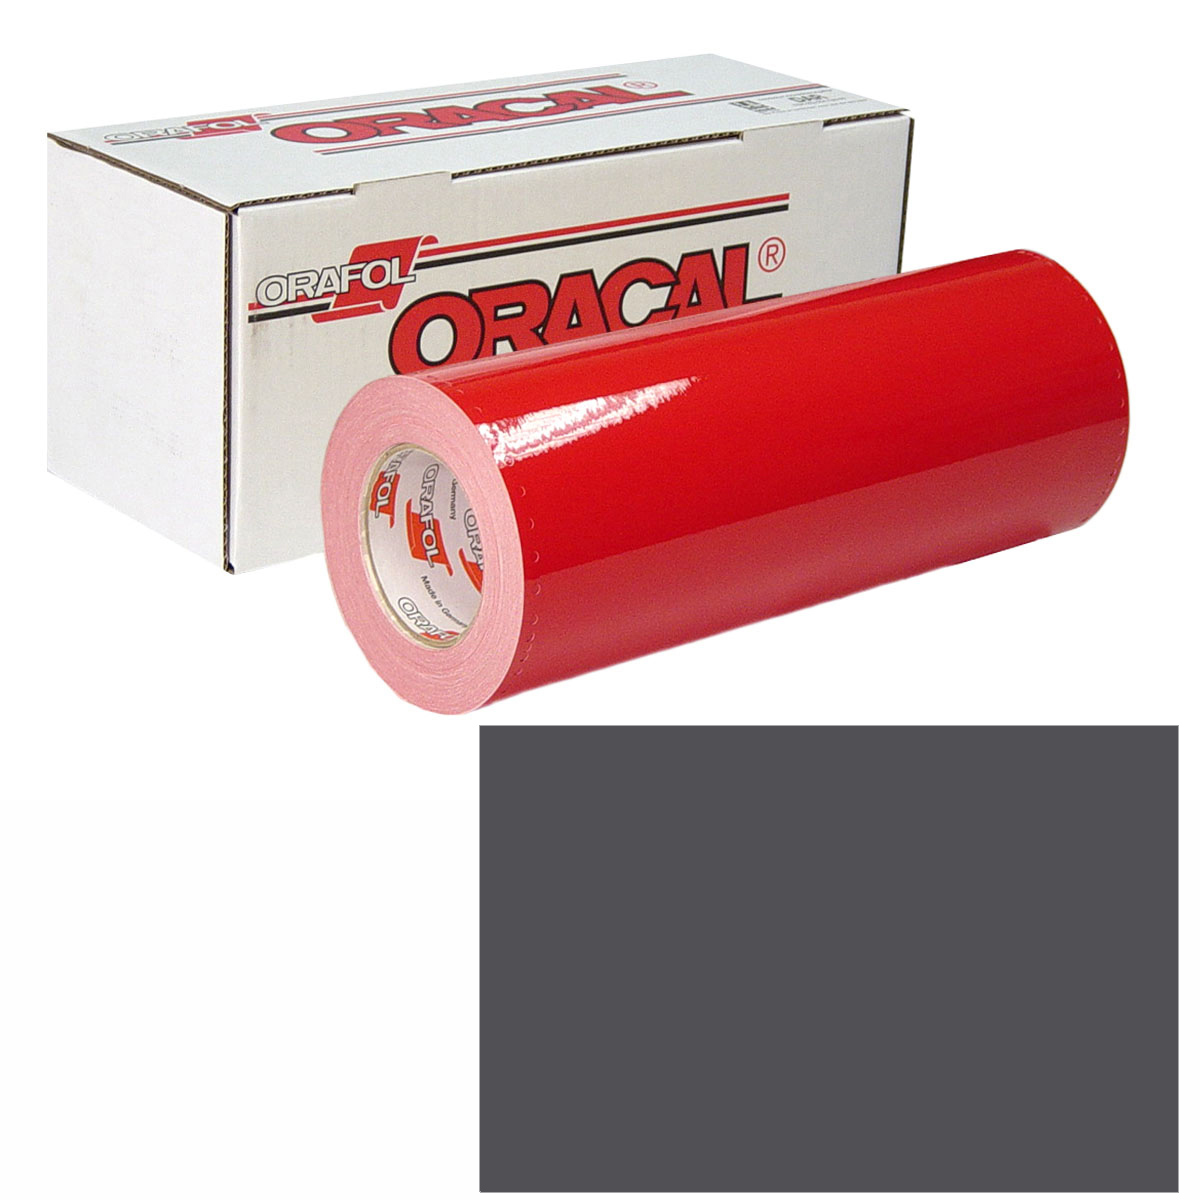 ORACAL 951M Unp 24in X 10yd 937 Charcoal Met